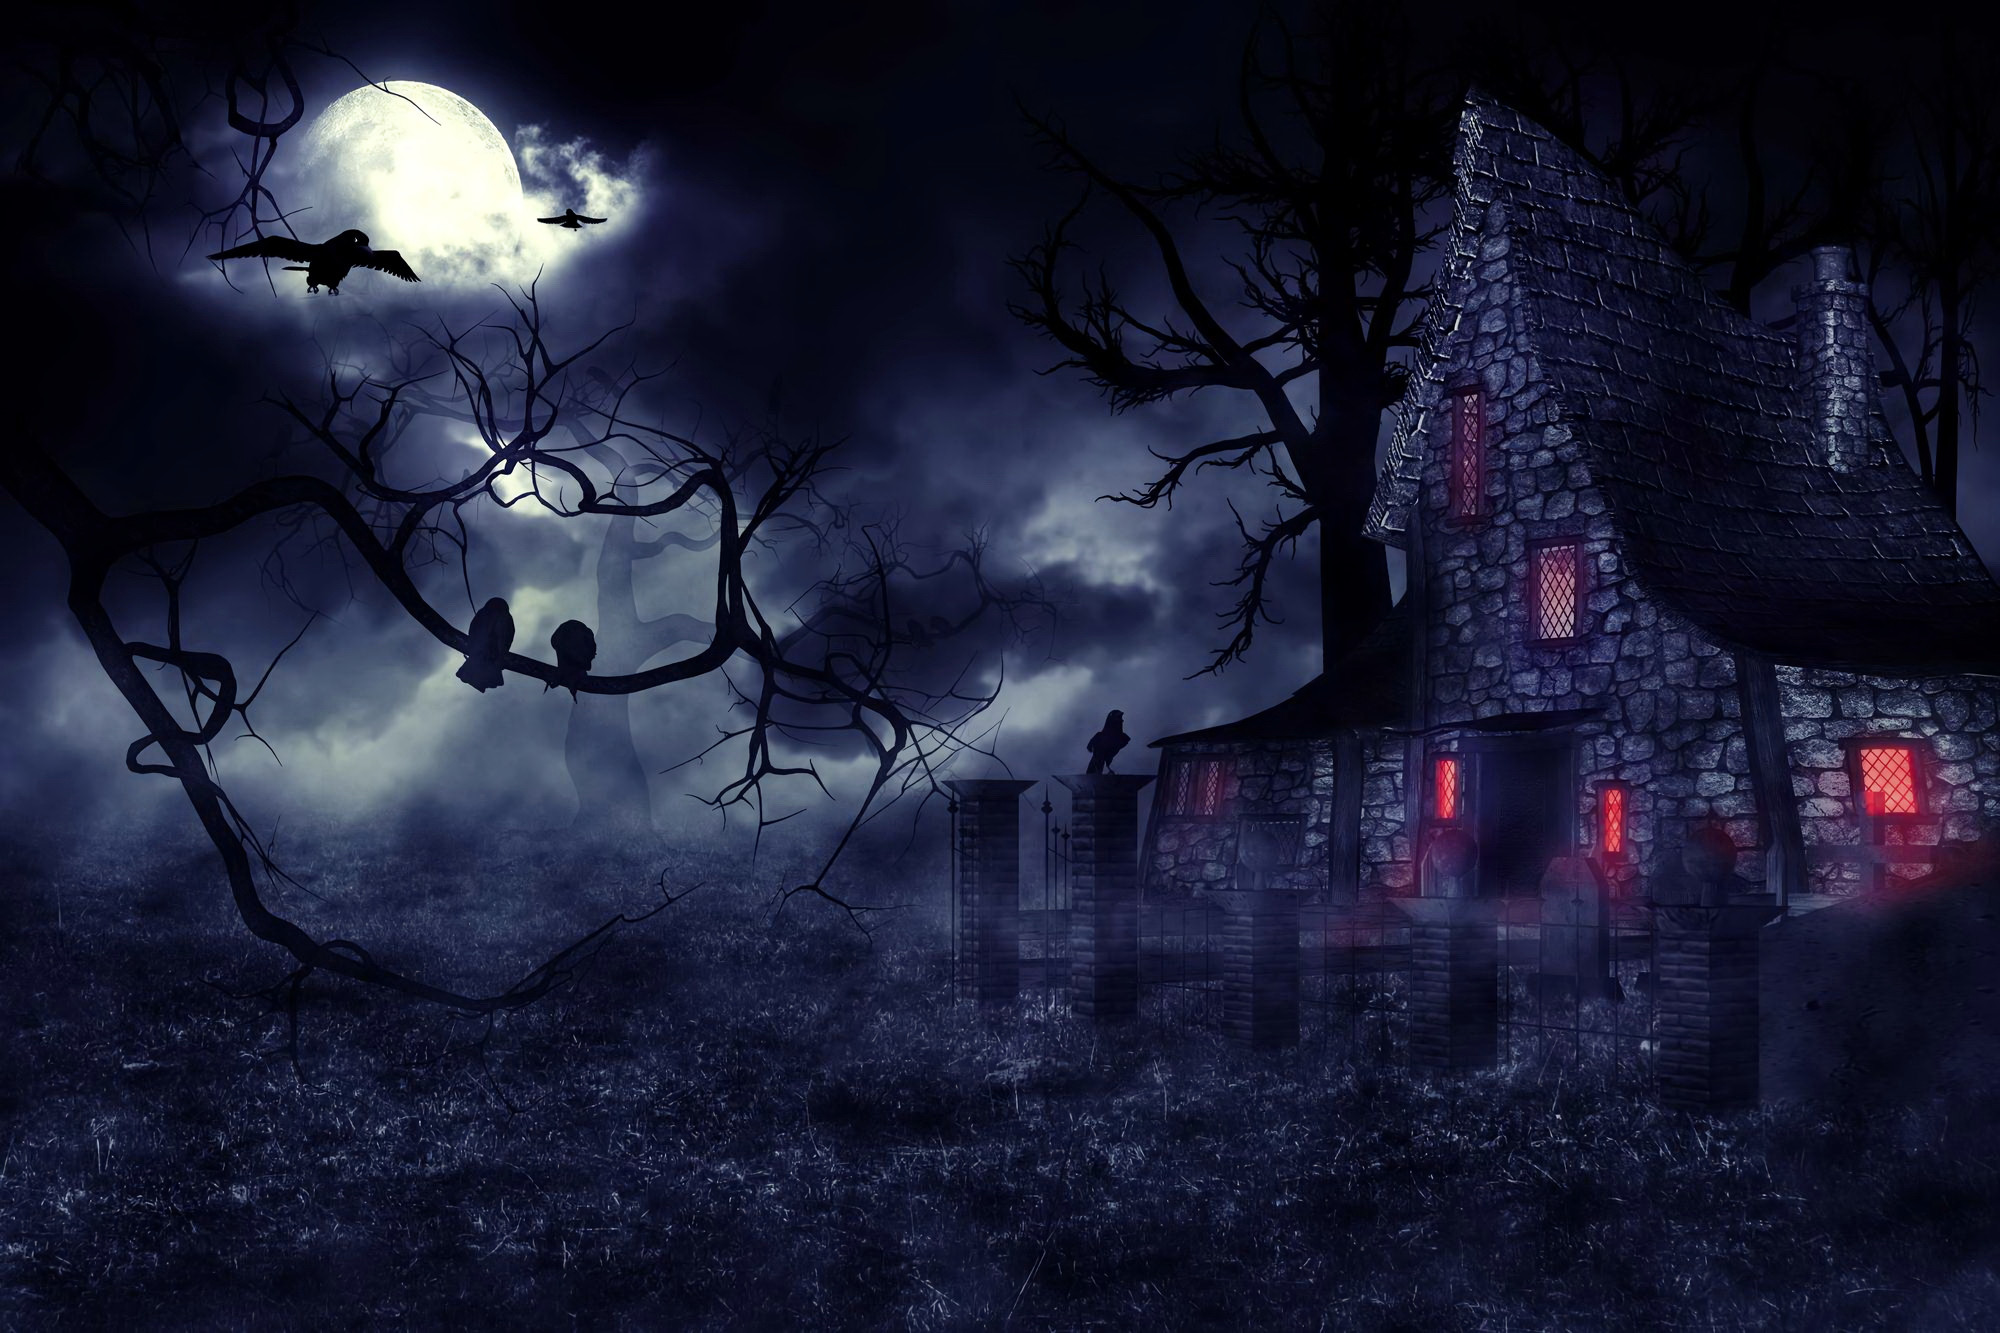 2000x1333 Dark House Haunted House Creepy Night Moon Tree Raven HD Wallpaper - HD  Wallpapers